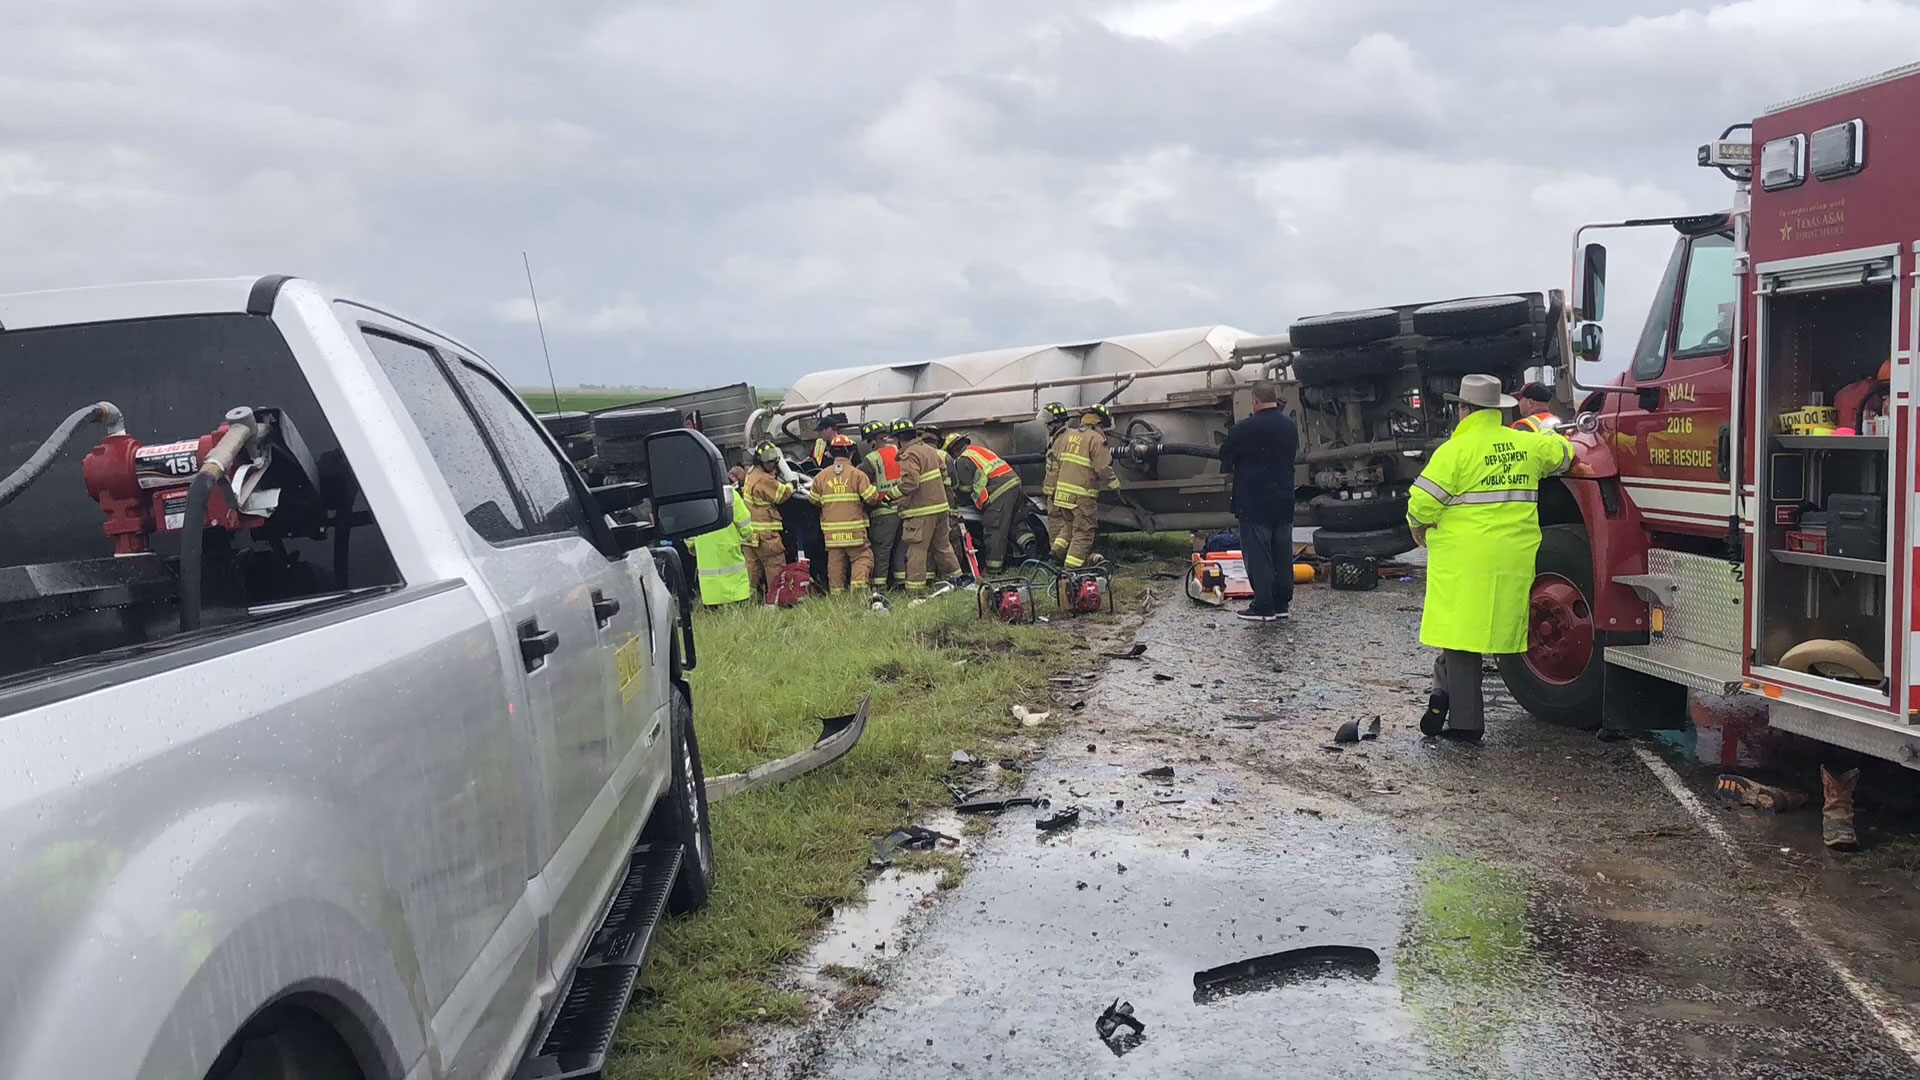 San Truck and a BMW 335i collide on U.S. 87 near Wall on Sept. 6, 2018. (LIVE! Photo/John Basquez)